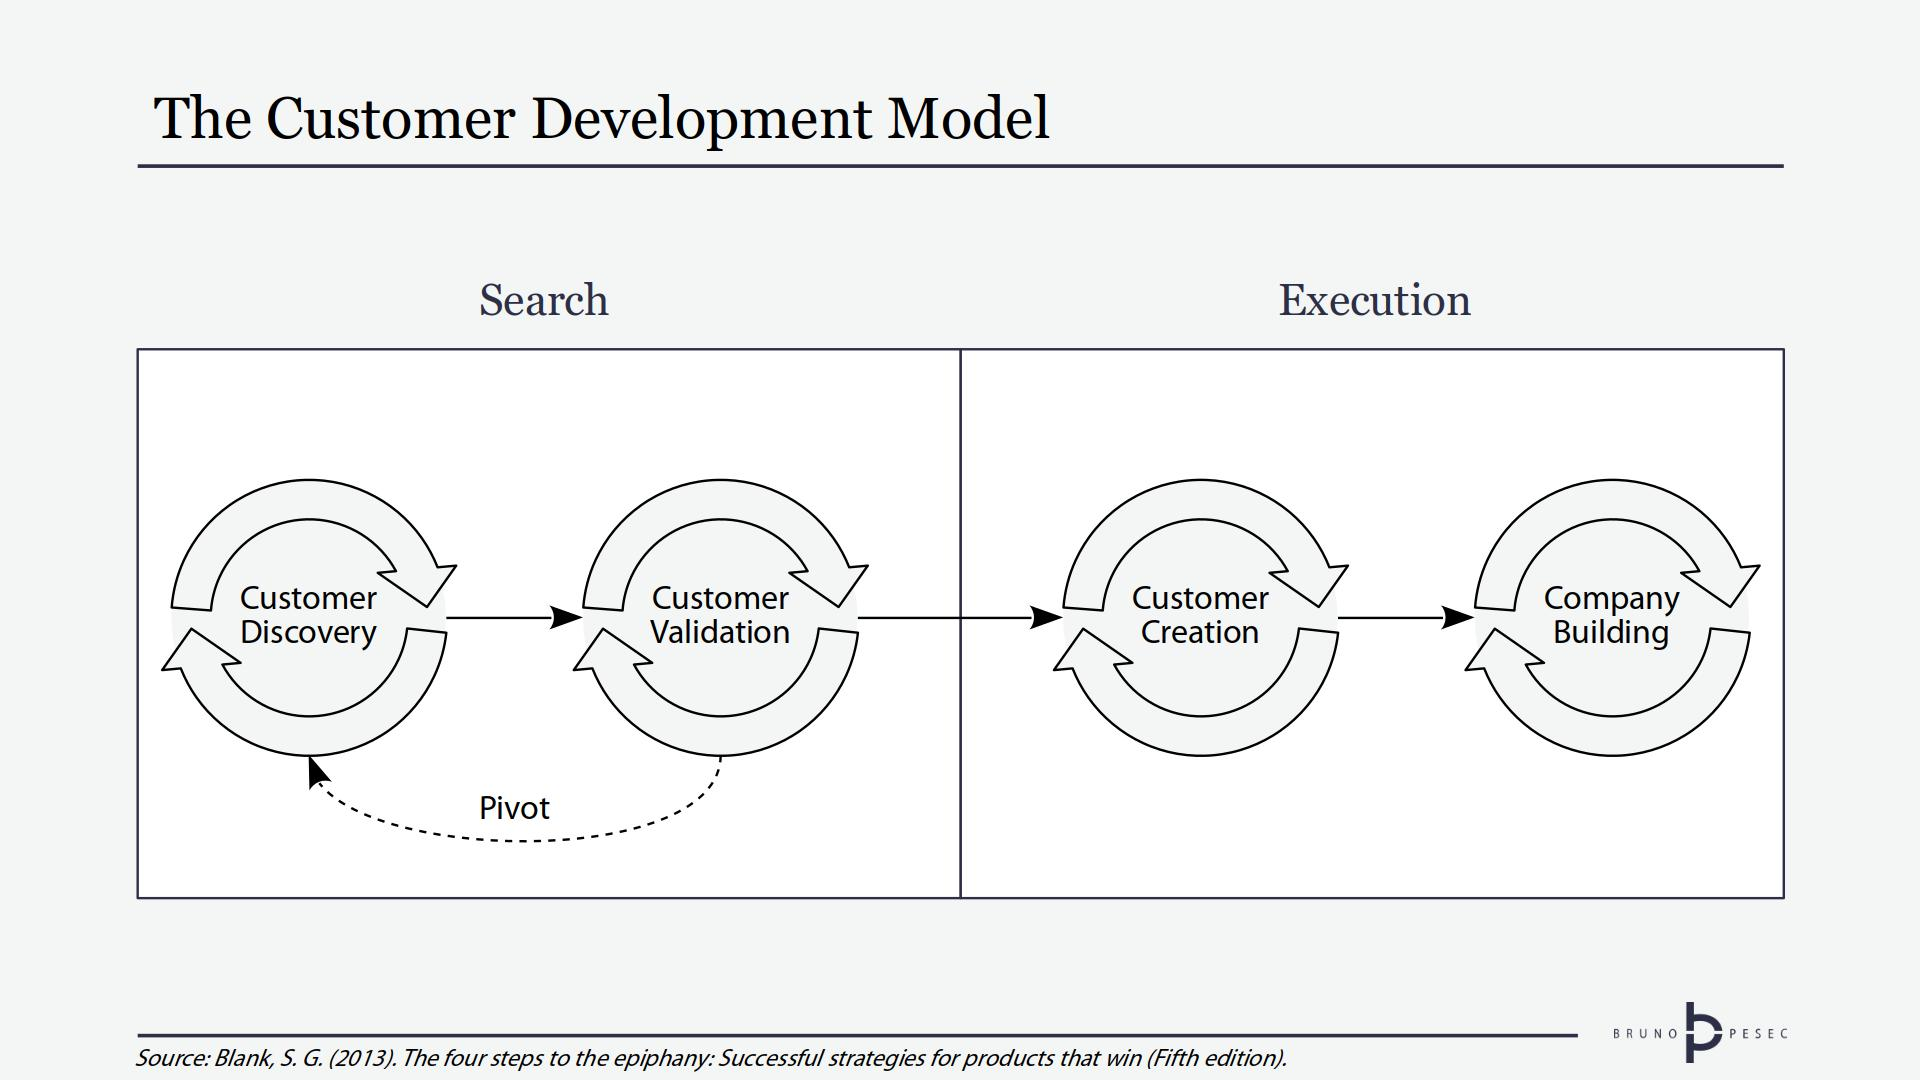 The Customer Development Model. Adapted from The Four Steps to the Epiphany.